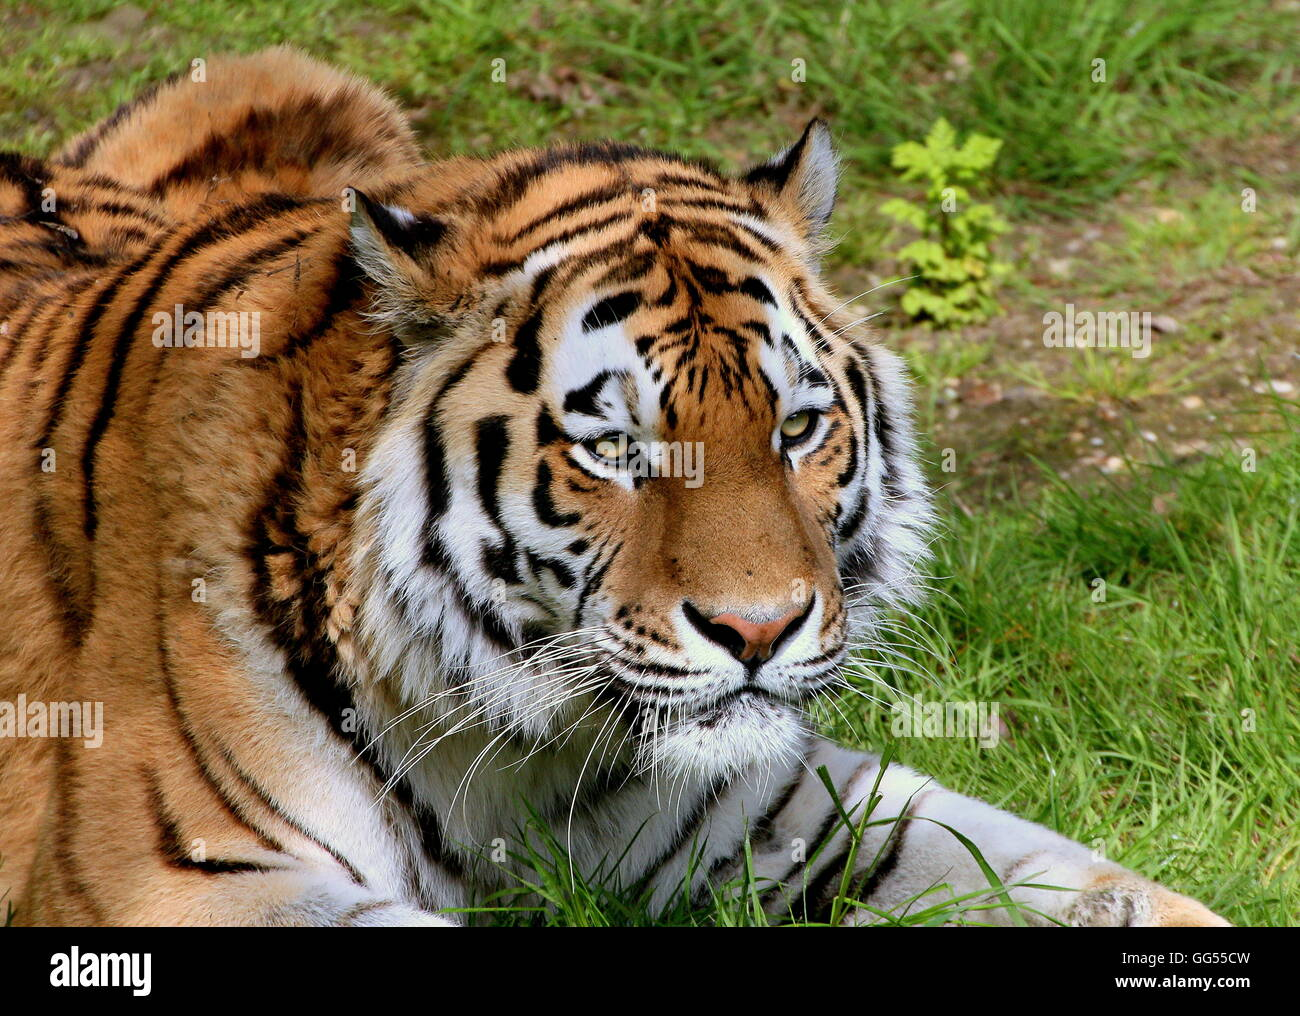 Fierce looking  male Siberian or Amur tiger (Panthera tigris altaica) - Stock Image